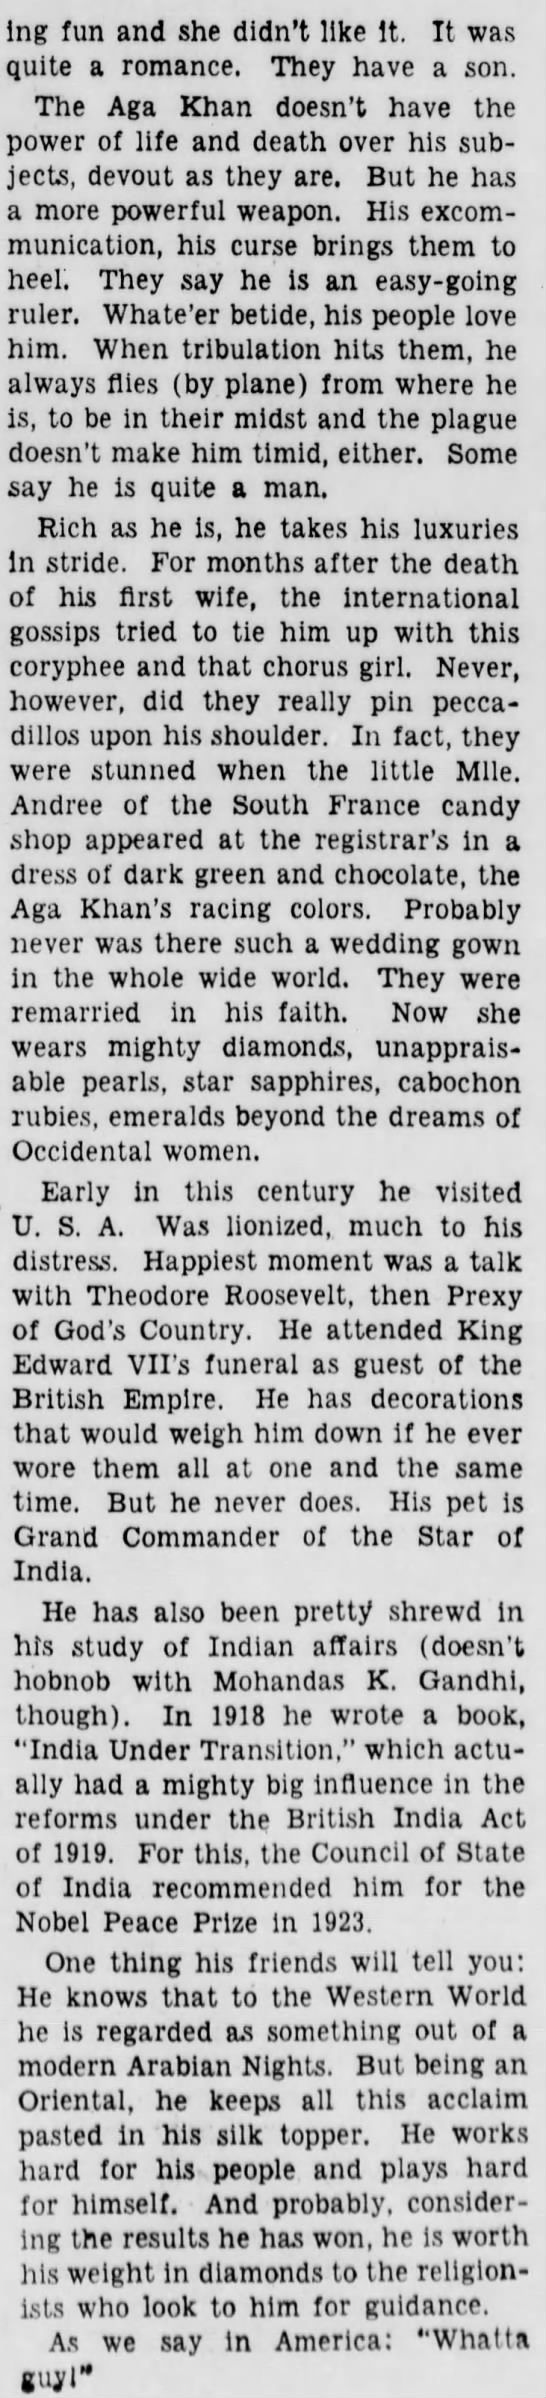 aga3a Old Print Article: Aga Khan Worth His Weight In Gold, Brooklyn Daily Eagle (1941)